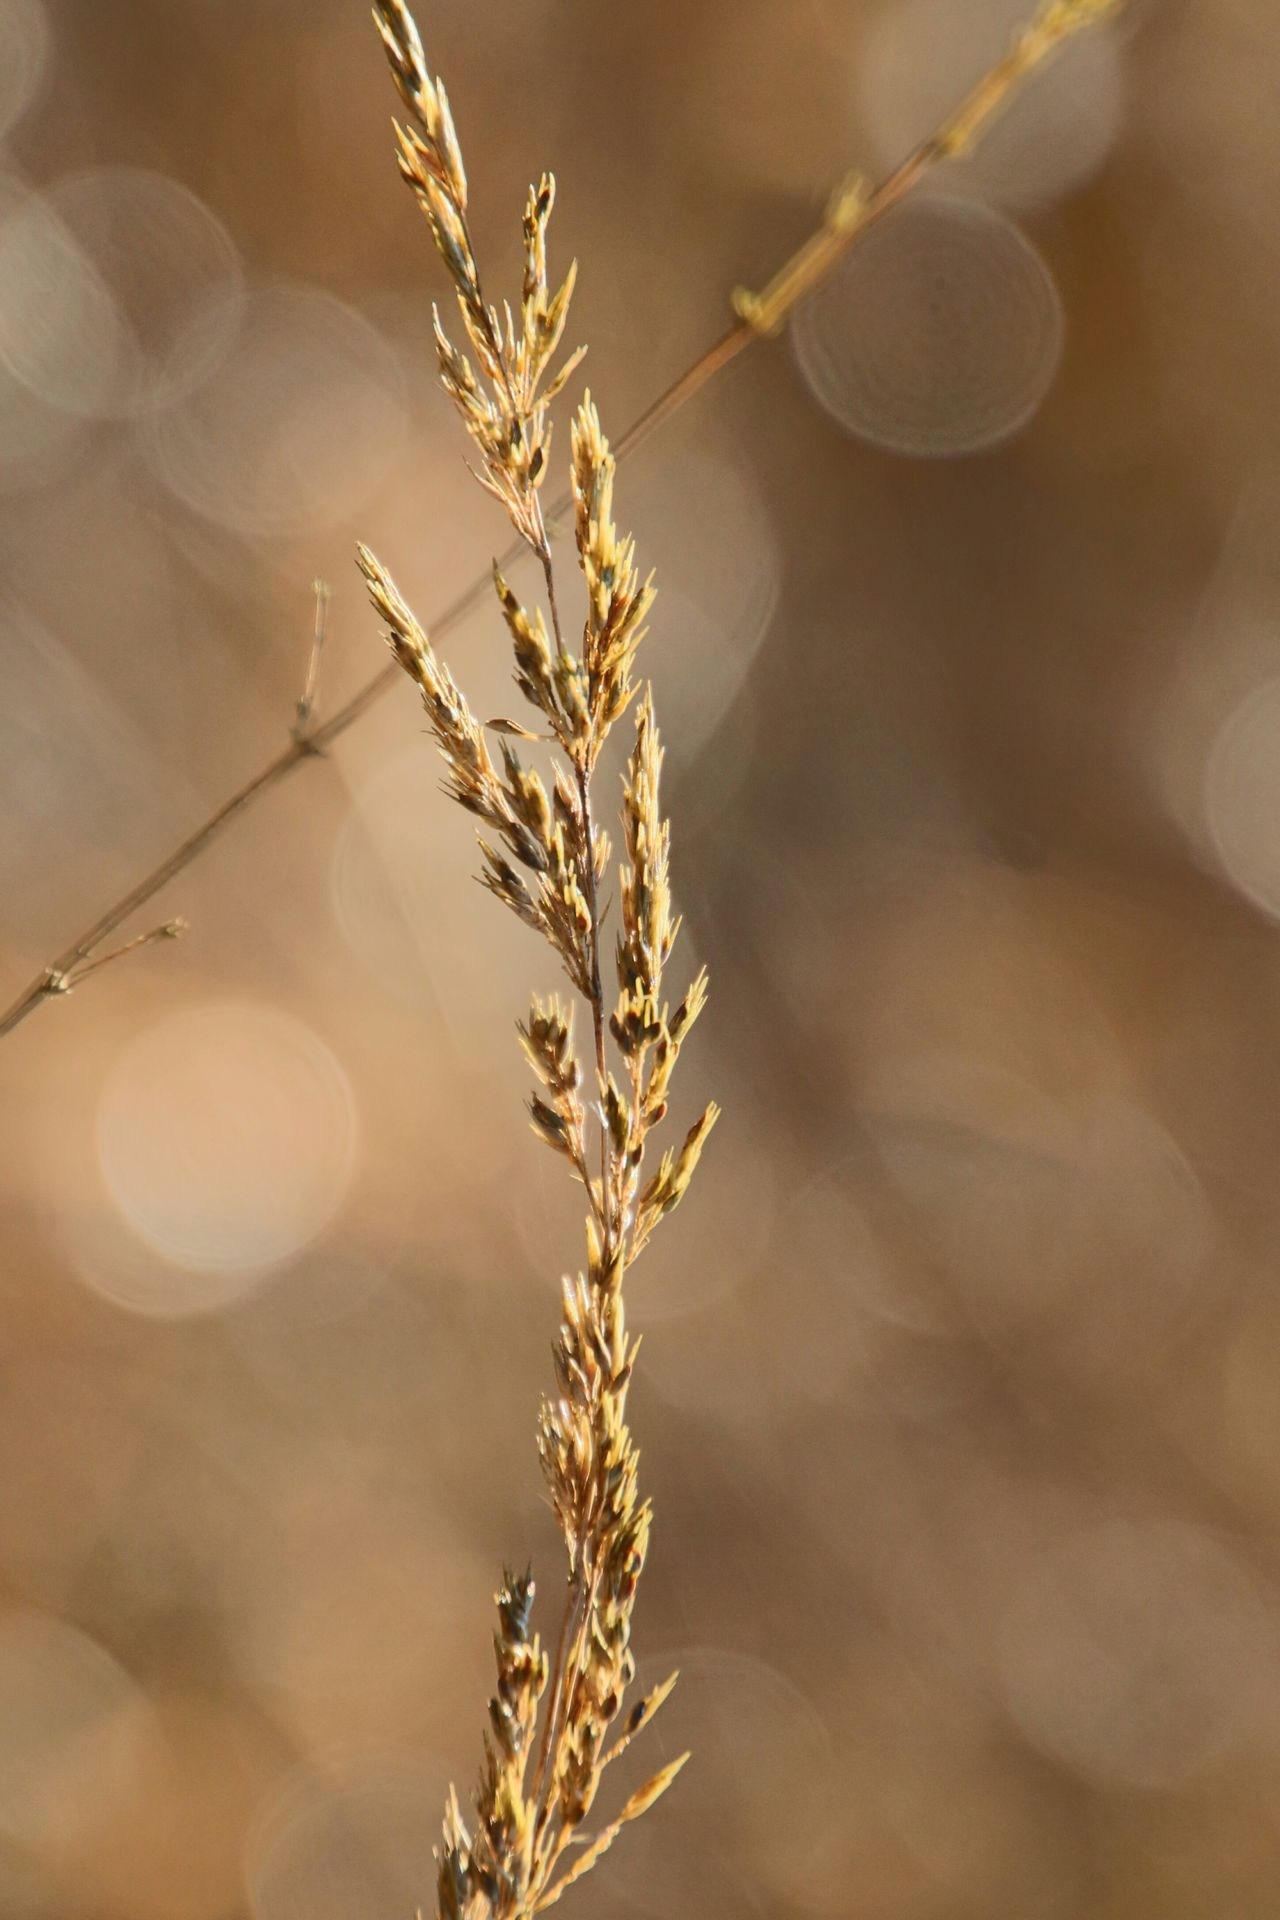 Gold Colored Cereal Plant Beauty In Nature Plant Part Nature Grass Close-up EyeEm Best Shots - Nature Outdoor Photography No People Outdoors Beautiful View From My Point Of View AMTPt_community OpenEdit Beauty In Nature Walking Around Taking Pictures World Of Color Backgrounds No People Outdoors Hello World Fascination Nature Garden Photography Ey4photography Focus On Foreground